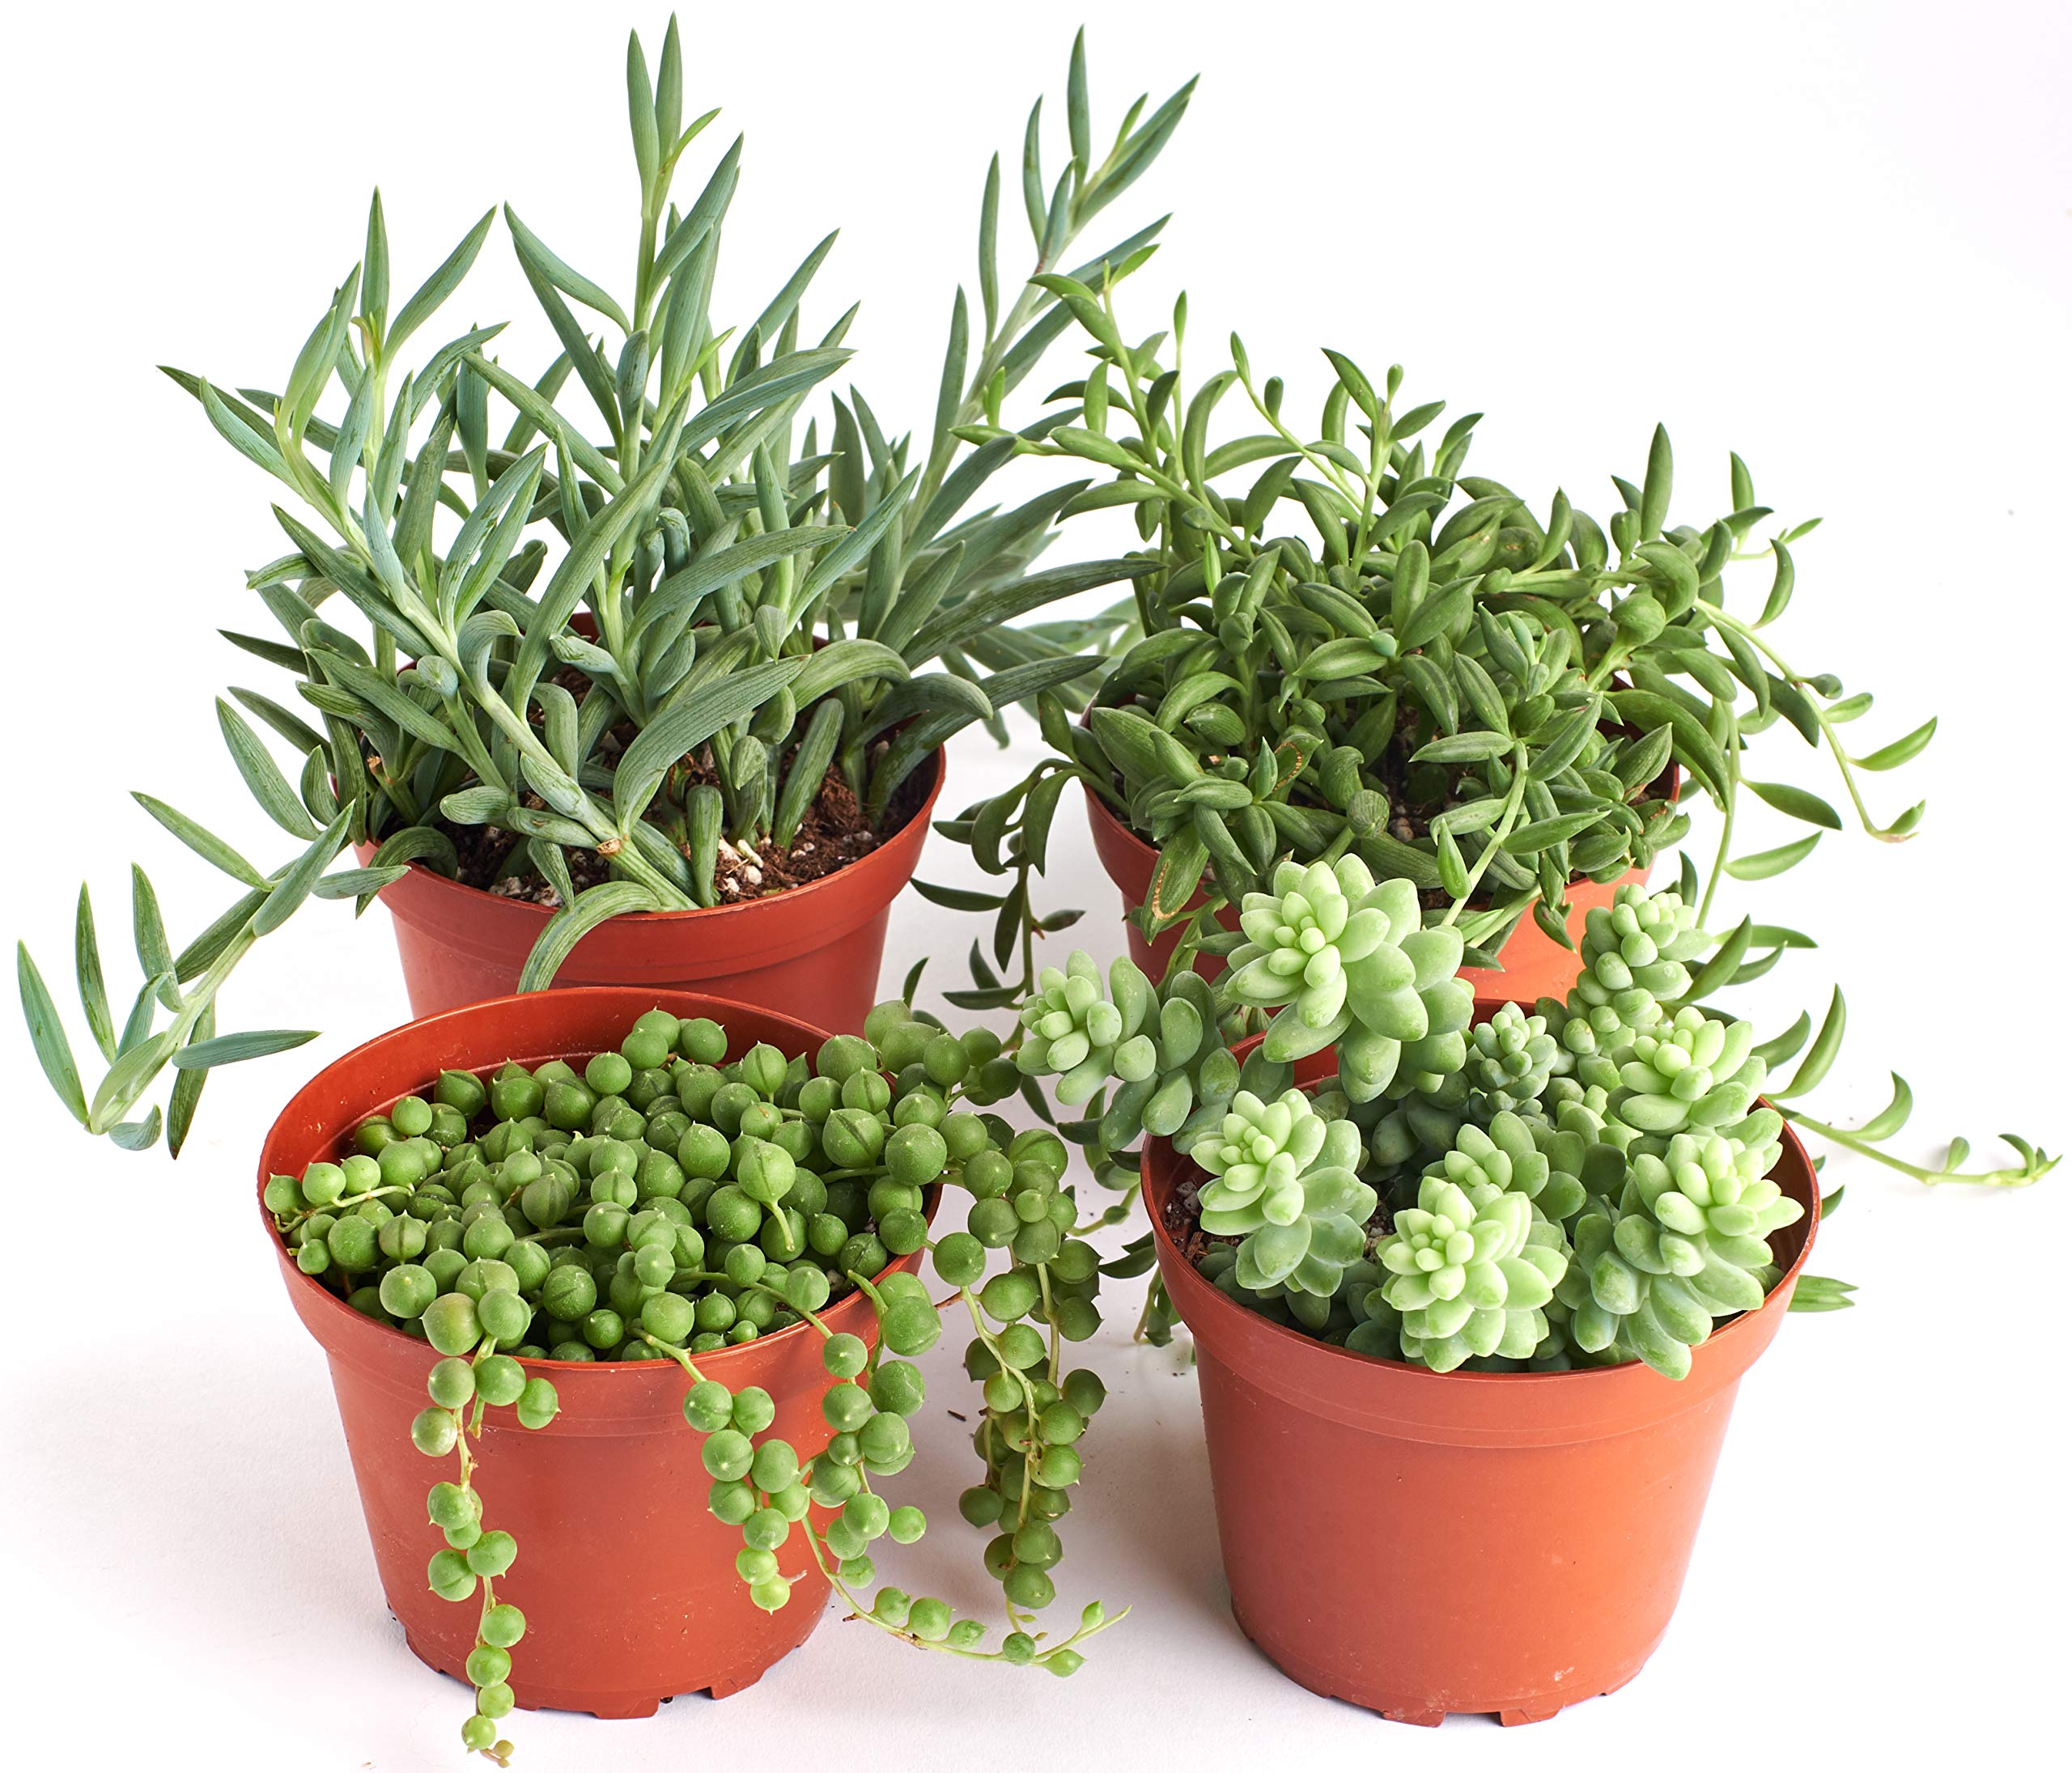 Amazon Com Shop Succulents Trailing Collection Variety Assortment Unique Cascading Hand Selected Fully Rooted Live Indoor Succulent Plants In A 4 Grow Pot 4 Inch Garden Outdoor